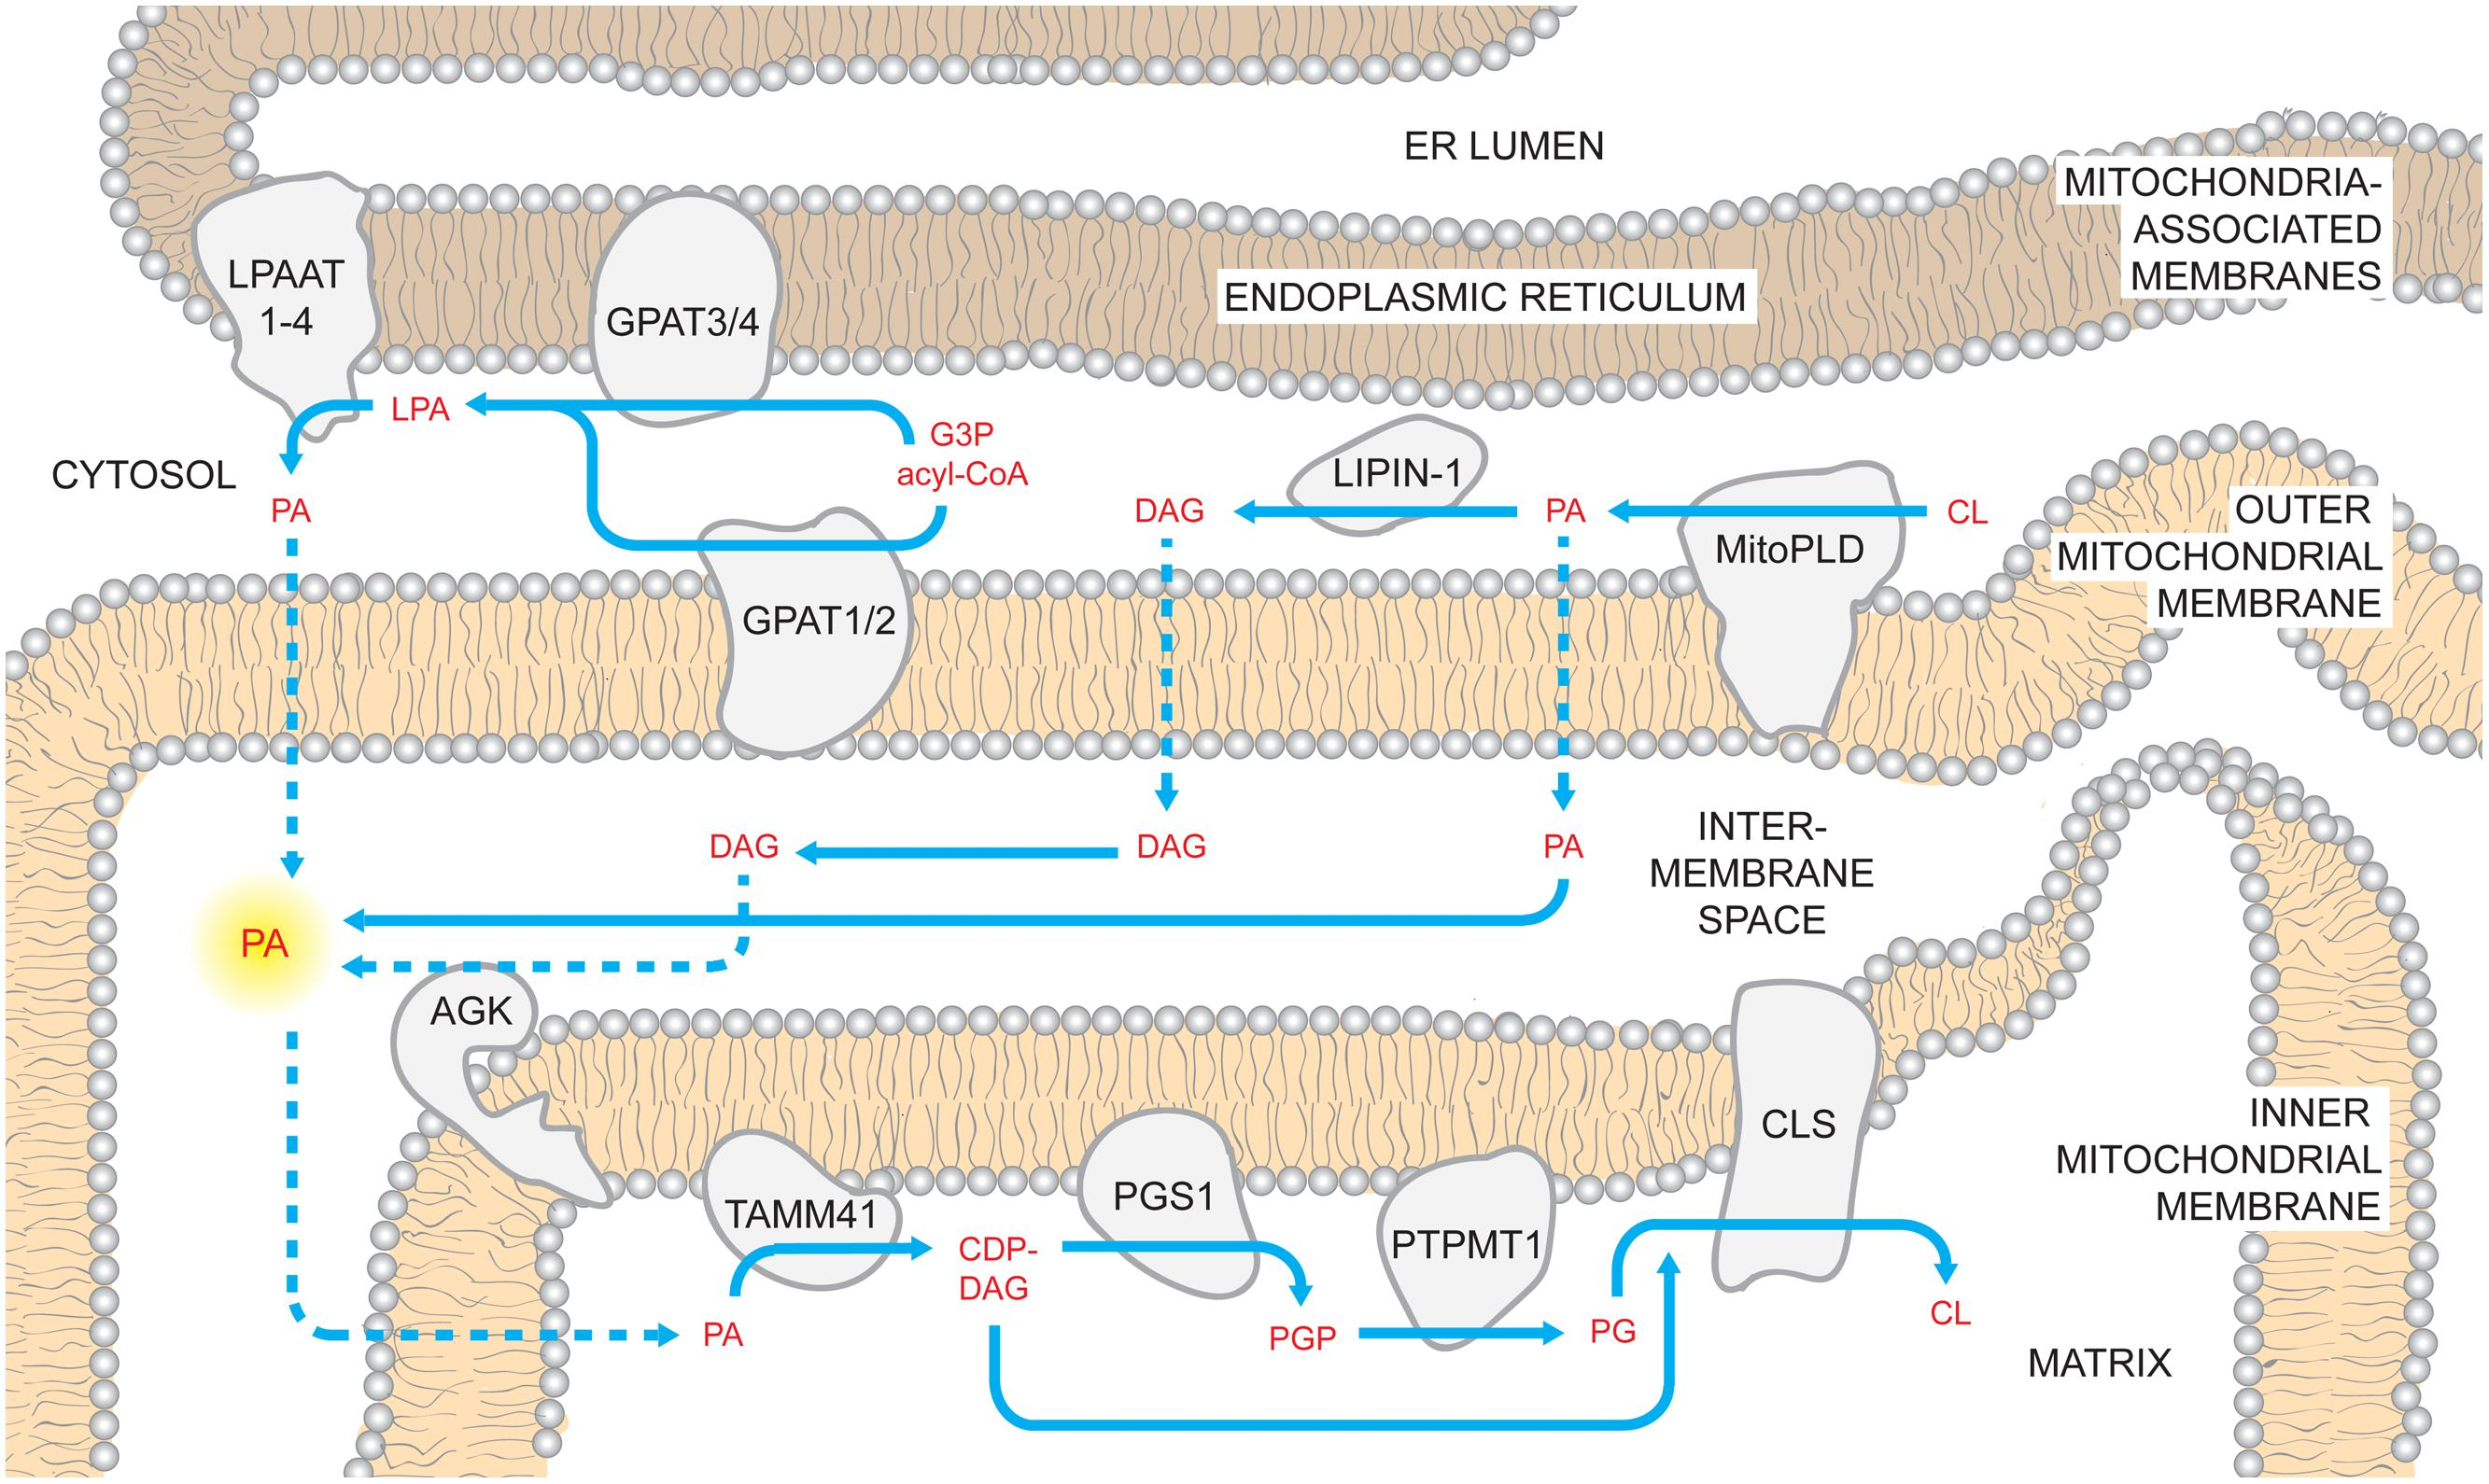 which organelle synthesises the phospholipids that form the plasma membrane